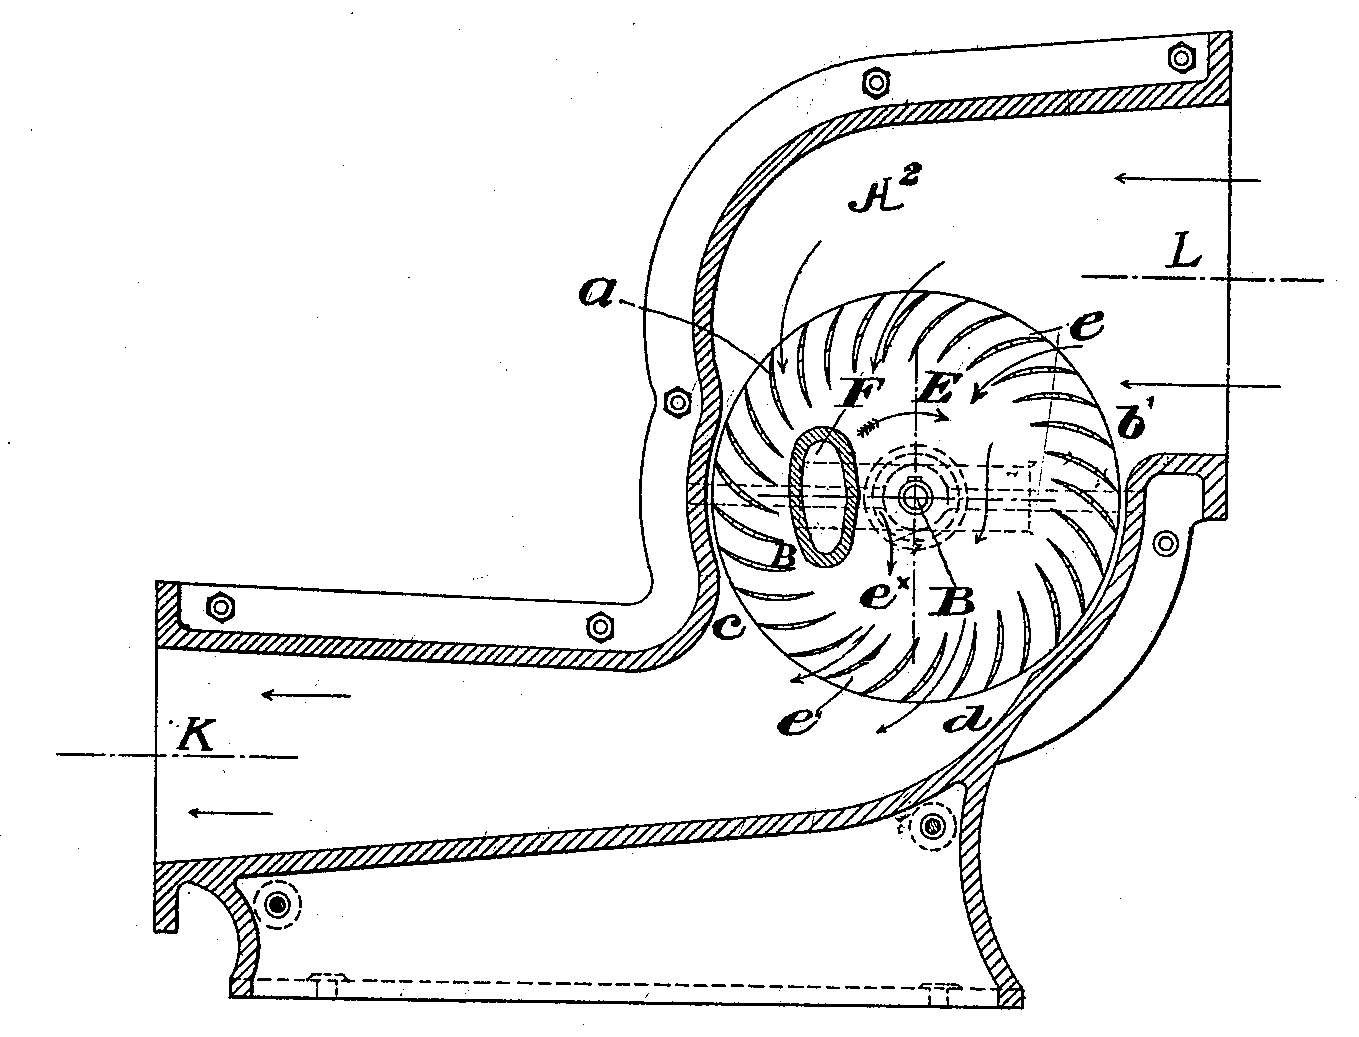 hight resolution of file cross flow fan schematic patent png wikimedia commonsfile cross flow fan schematic patent png